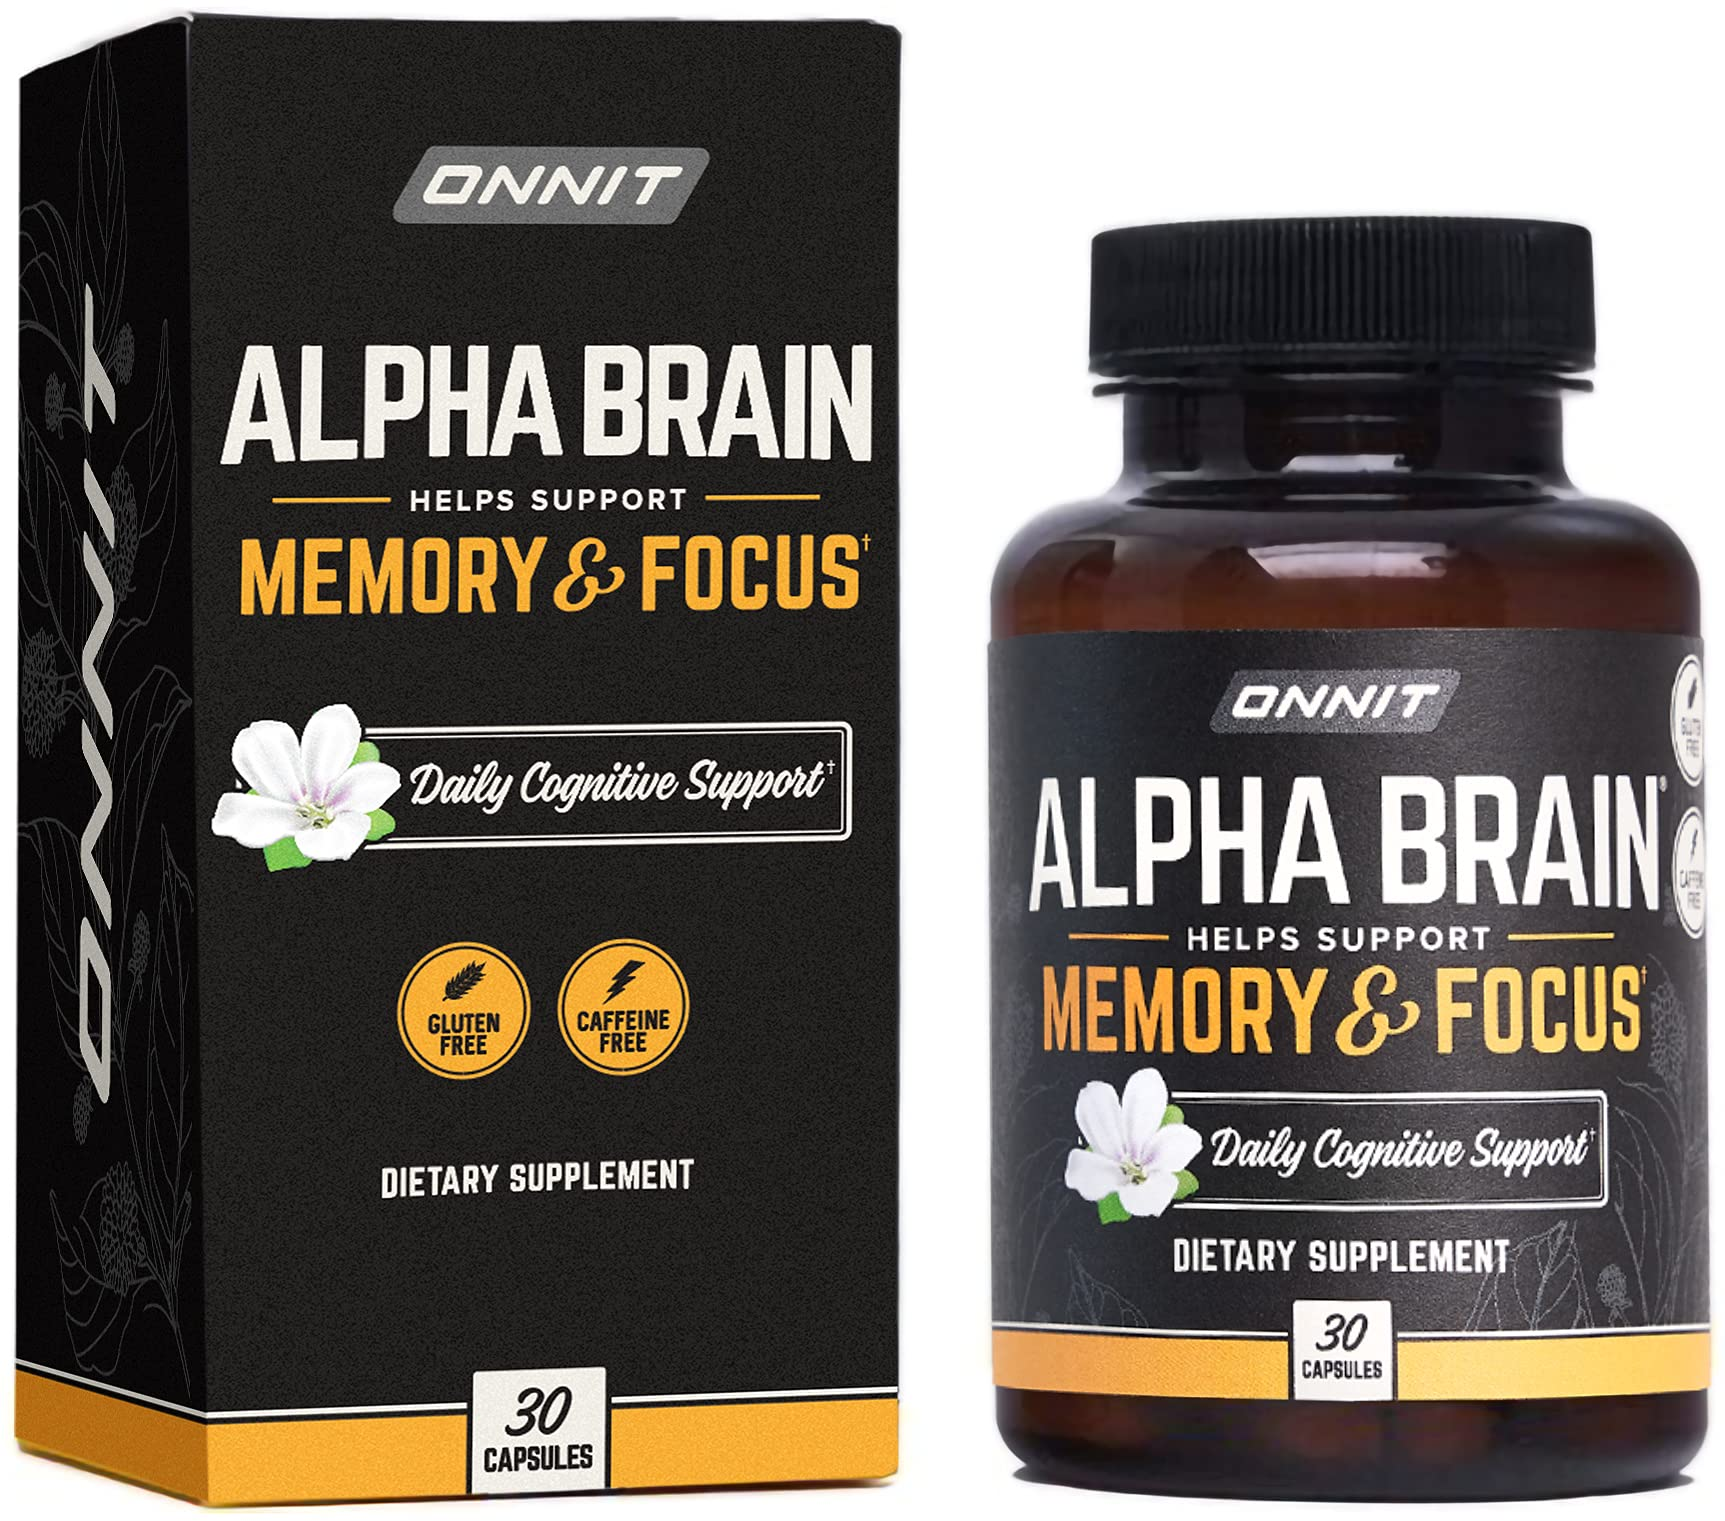 ONNIT Alpha Brain (30ct) - Over 1 Million Bottles Sold - Premium Nootropic Brain Supplement - Focus, Concentration & Memory - Alpha GPC, L Theanine & Bacopa Monnieri